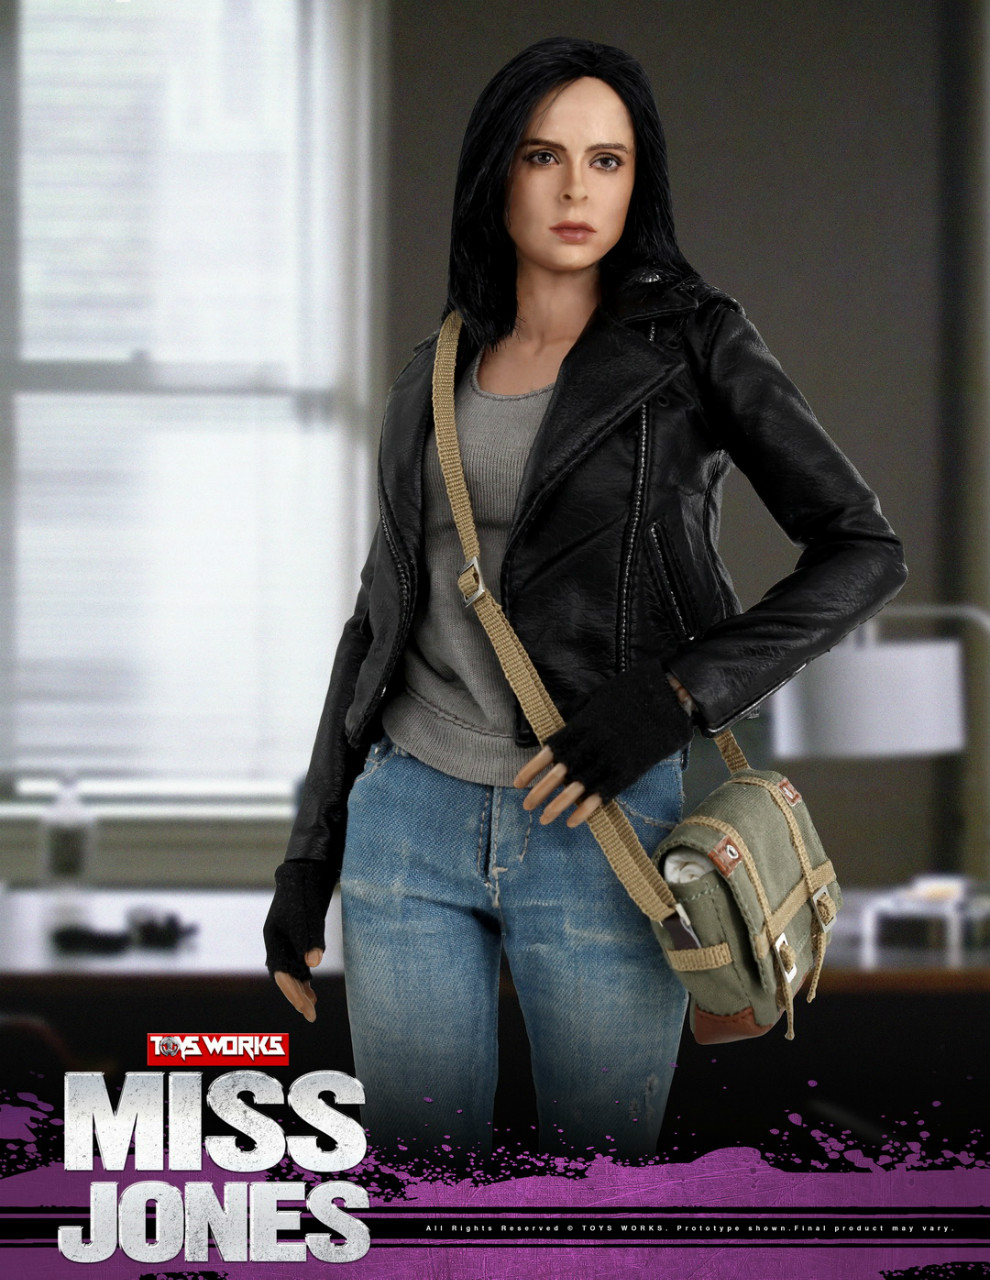 tv - NEW PRODUCT: TOYS WORKS New: 1/6 Miss Jones Miss Jones can move TW007 19163616